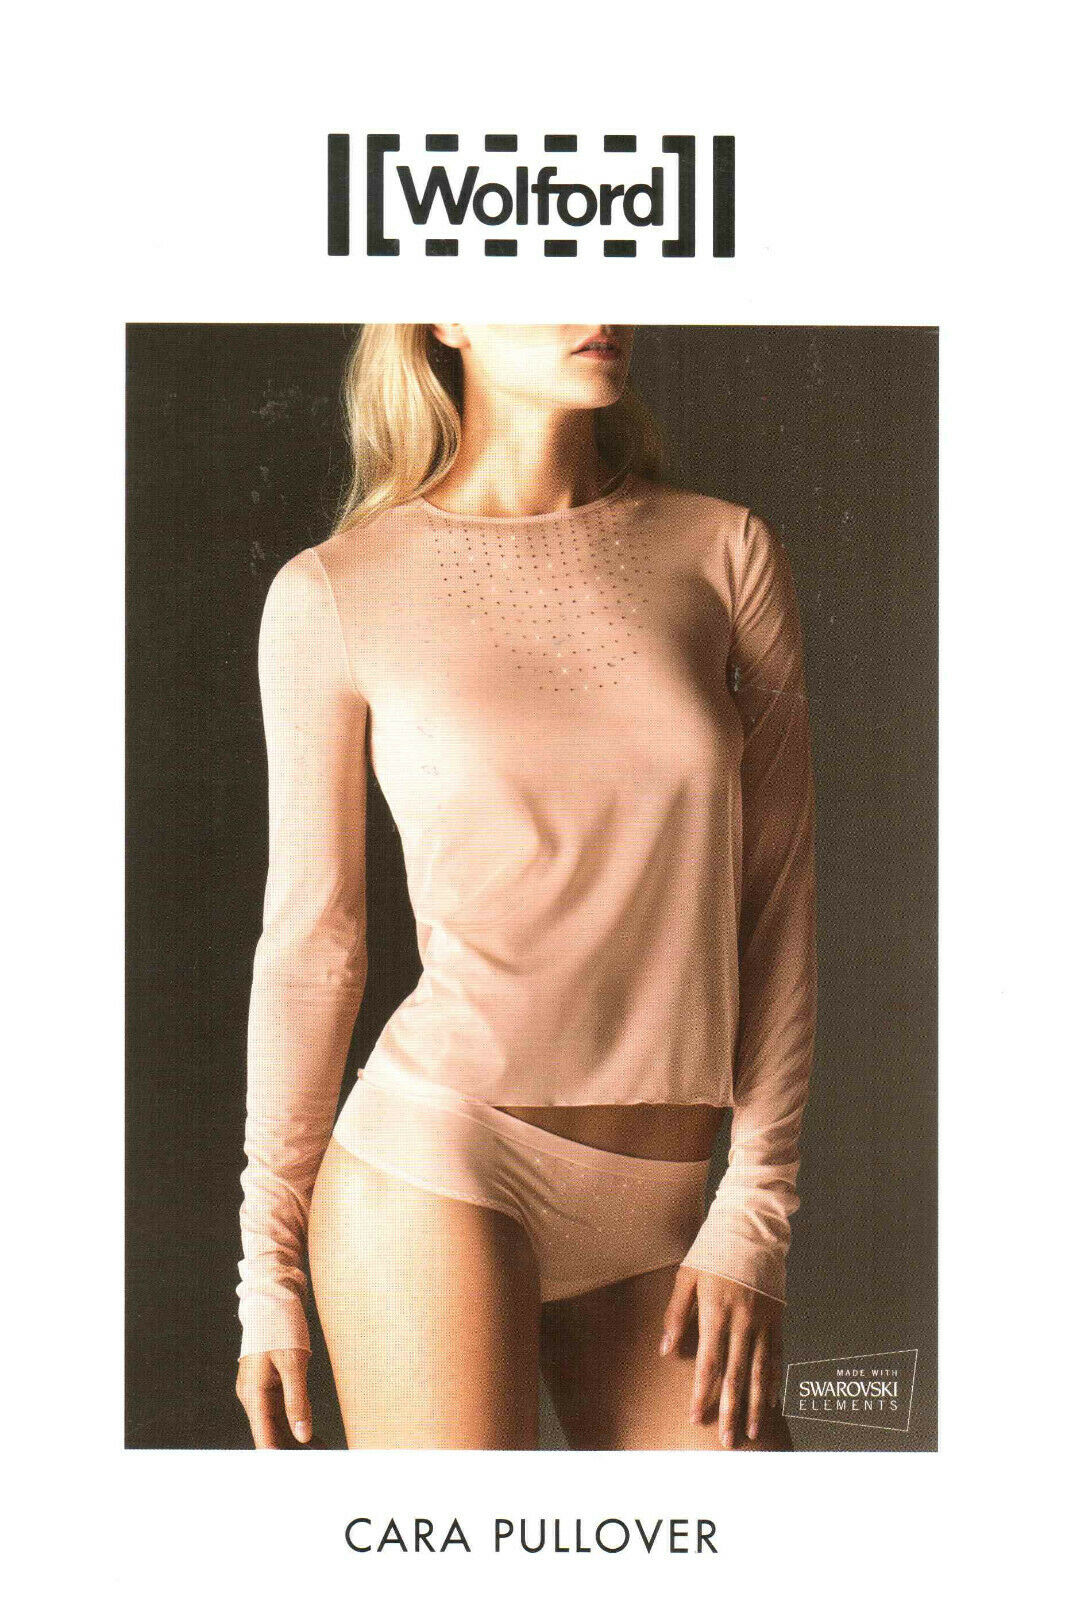 Luxe Pur  Wolford Pull CARA (59862), M, Bellini, NOUVEAU & NEUF dans sa boîte 195,00 os